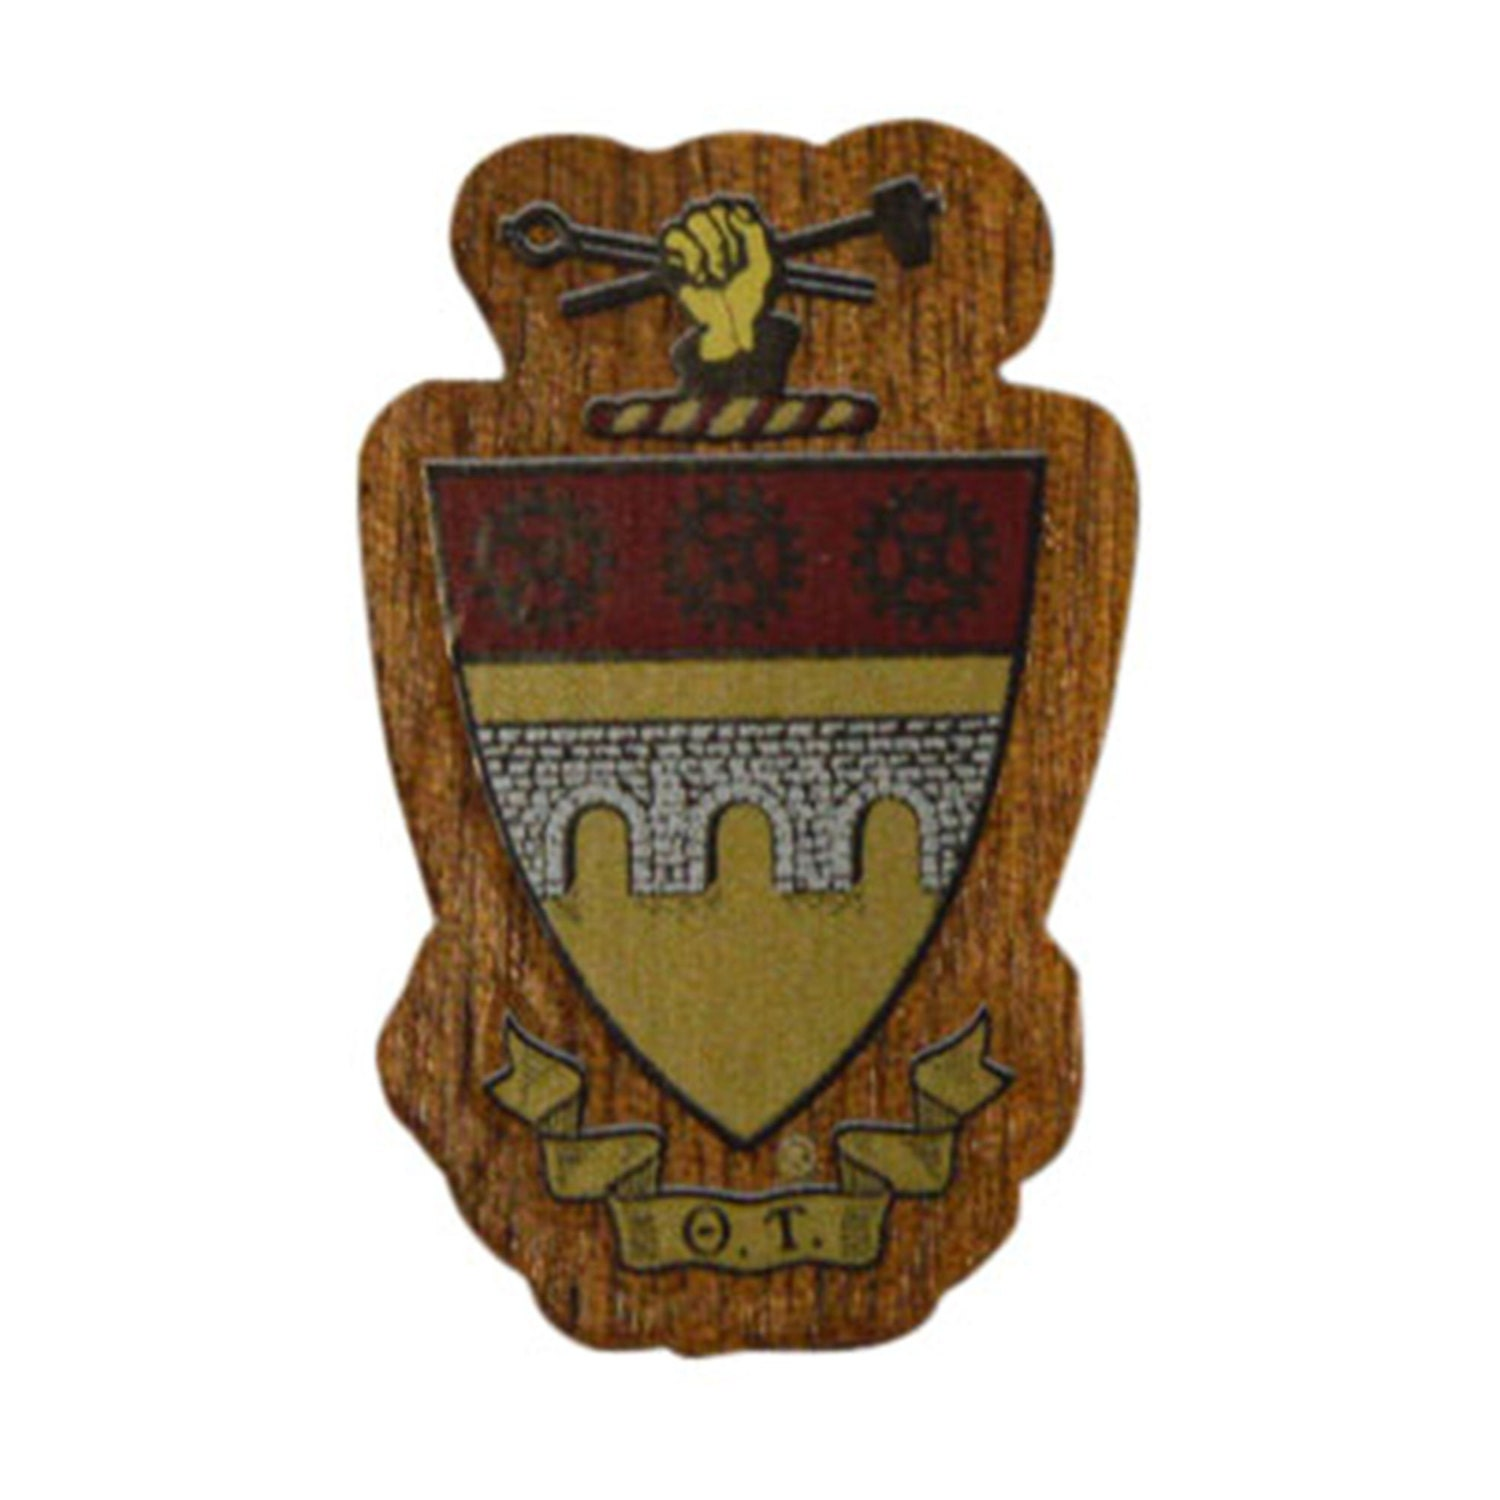 Theta tau fraternity mini wood crest for paddles mascot zoom buycottarizona Image collections